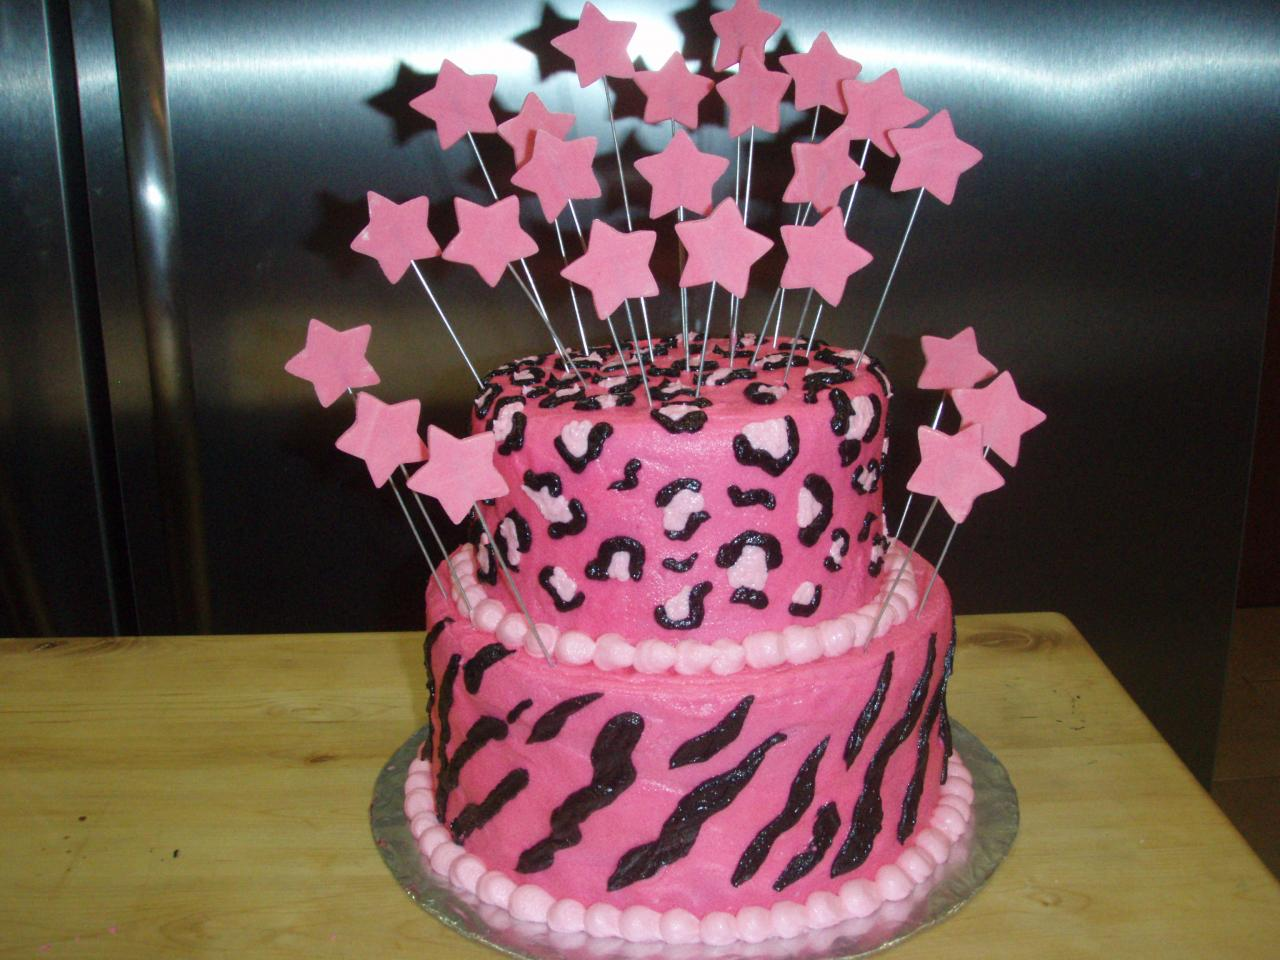 Pink and Cheetah Print Birthday Cake